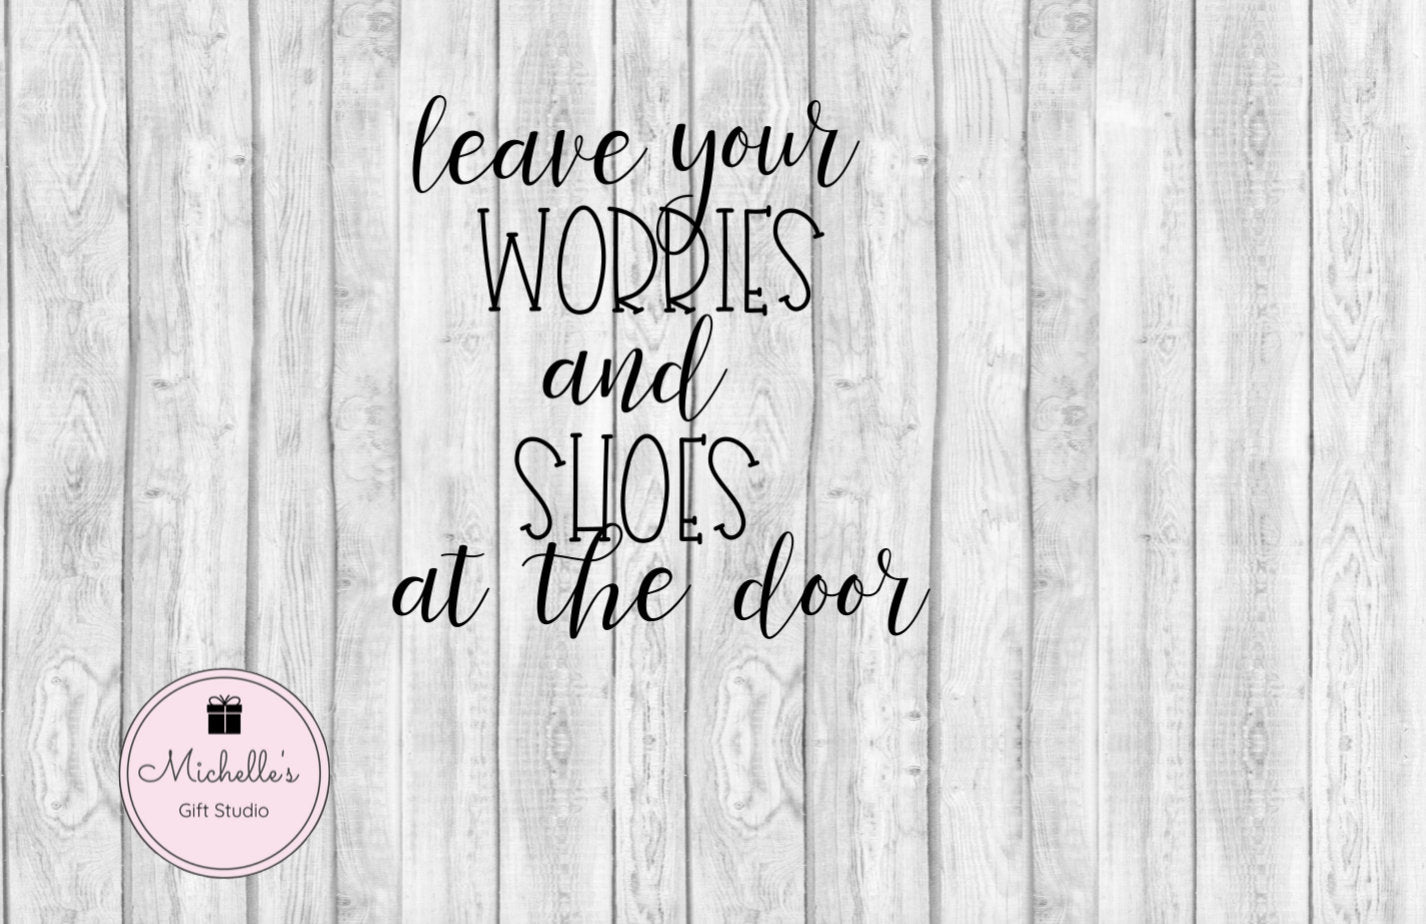 Leave Your Worries and Shoes at the Door svg | Home svg | Worries svg | Shoes svg | Home Sign svg | Quote svg | Quotes svg - Michelle's Gift Studio